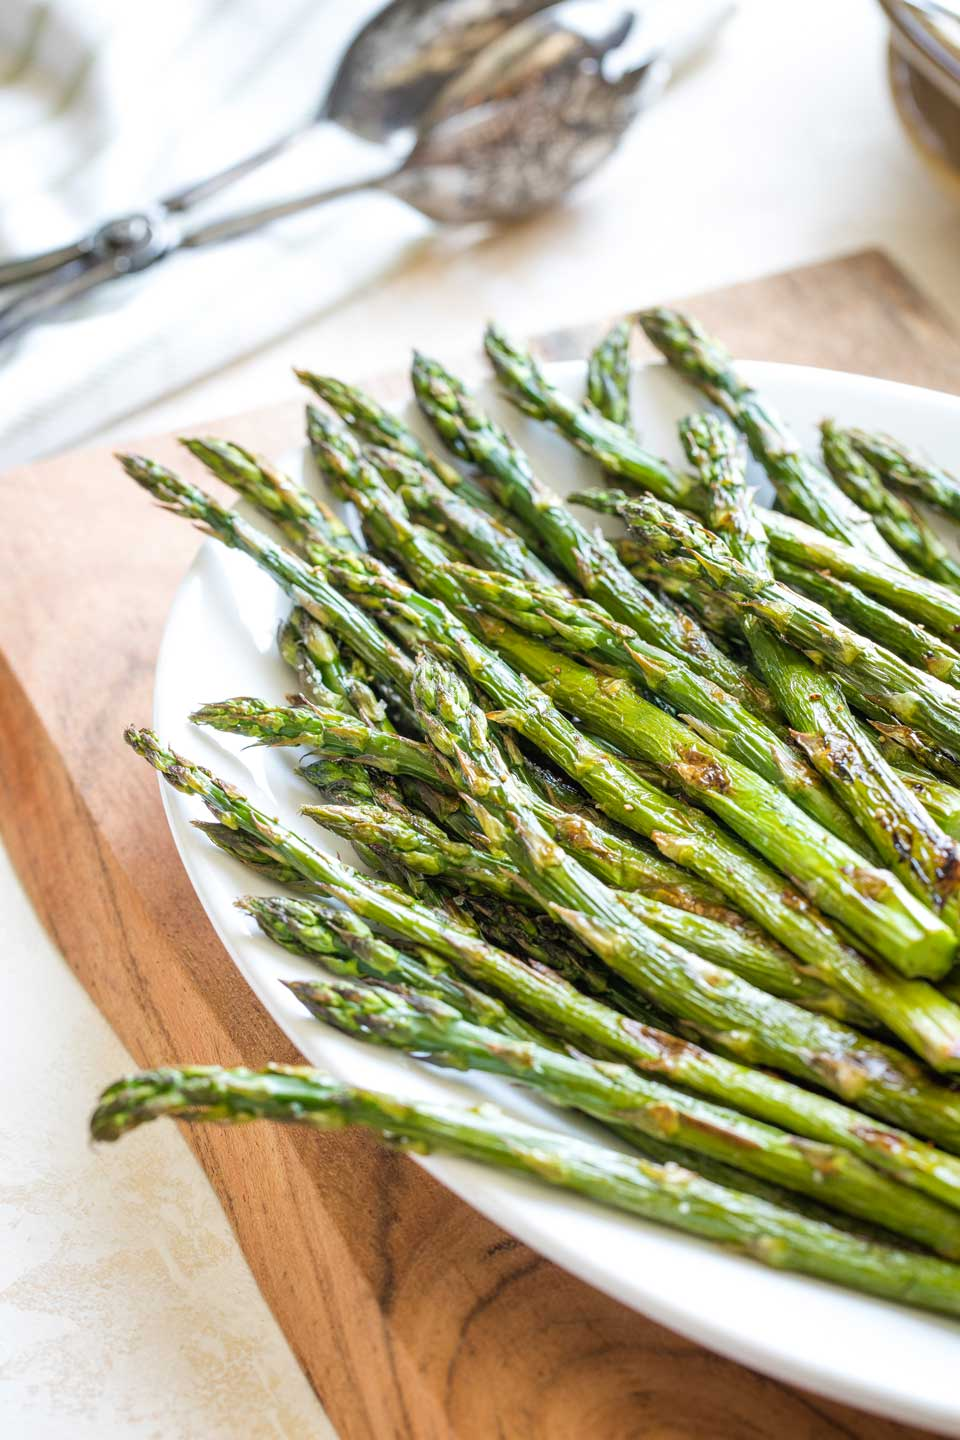 Partial view of the top portion of the roasted asparagus spears after they're out of the oven and pile on a white serving platter that's sitting on a wooden cutting board.